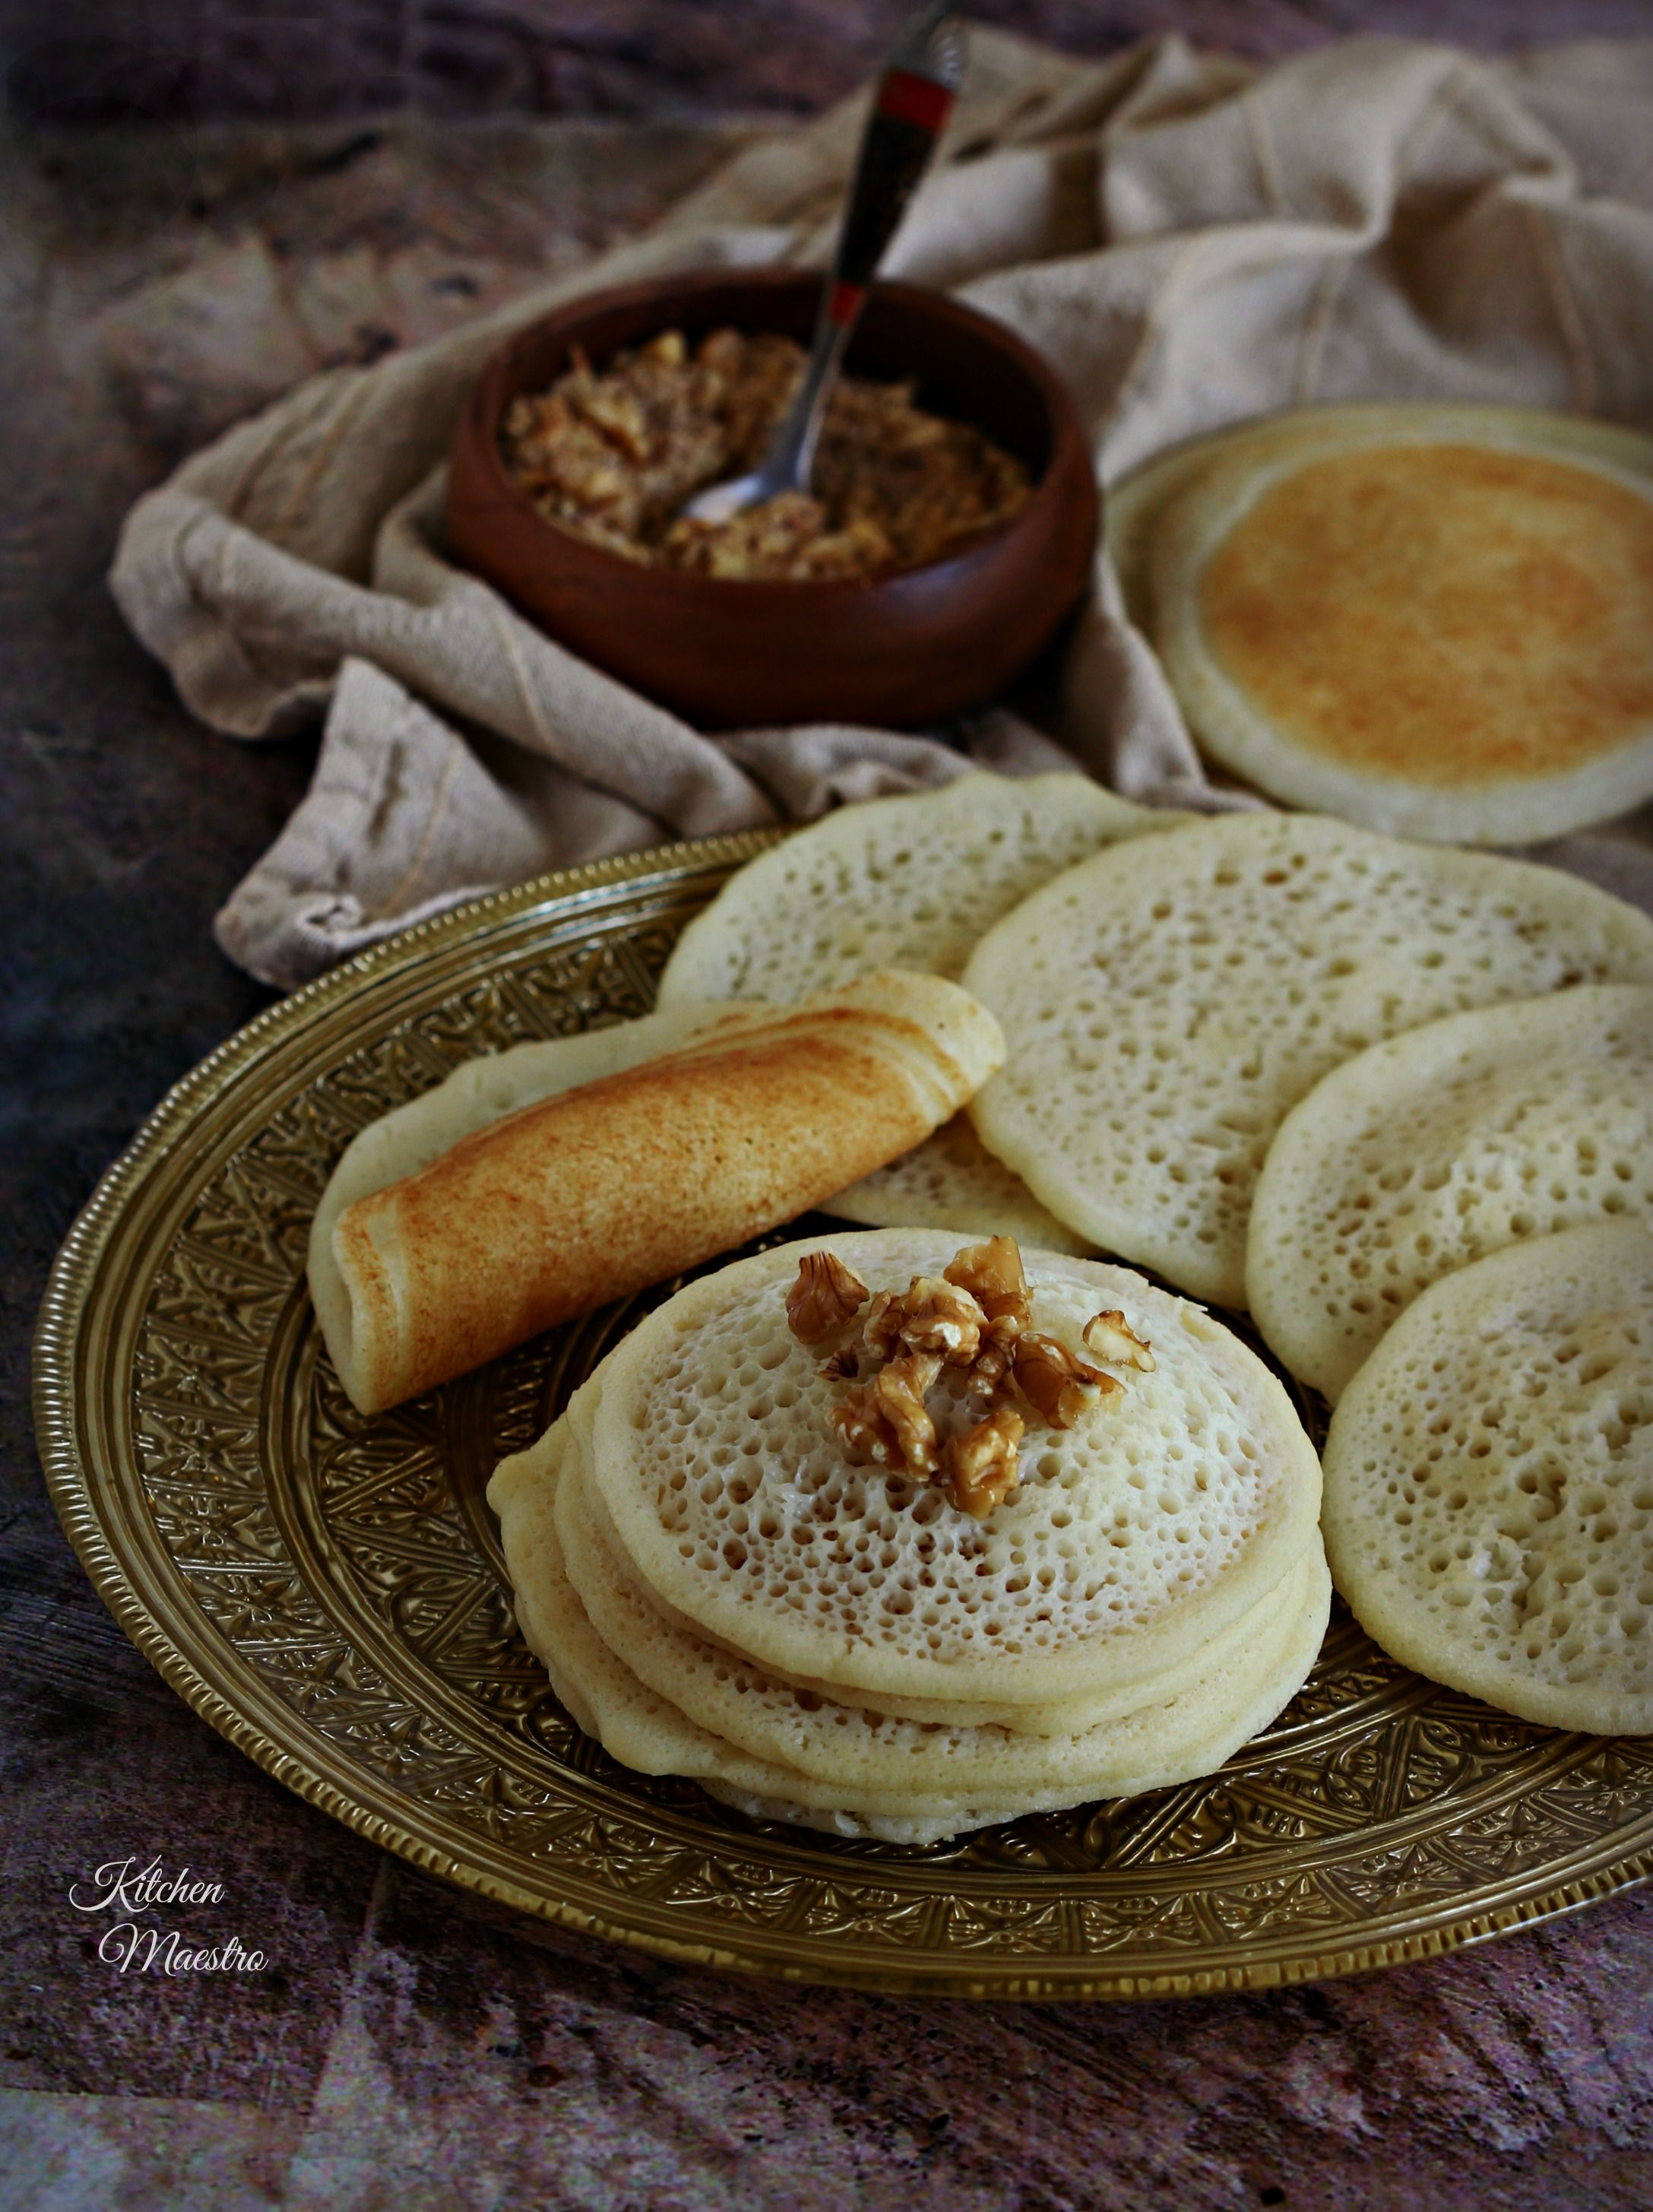 Qatayef Atayef A Middle Eastern Stuffed Pancakes There Is Something Wonderful About Dishes That Are Only Serv Ramadan Desserts Ramadan Recipes Palestinian Food